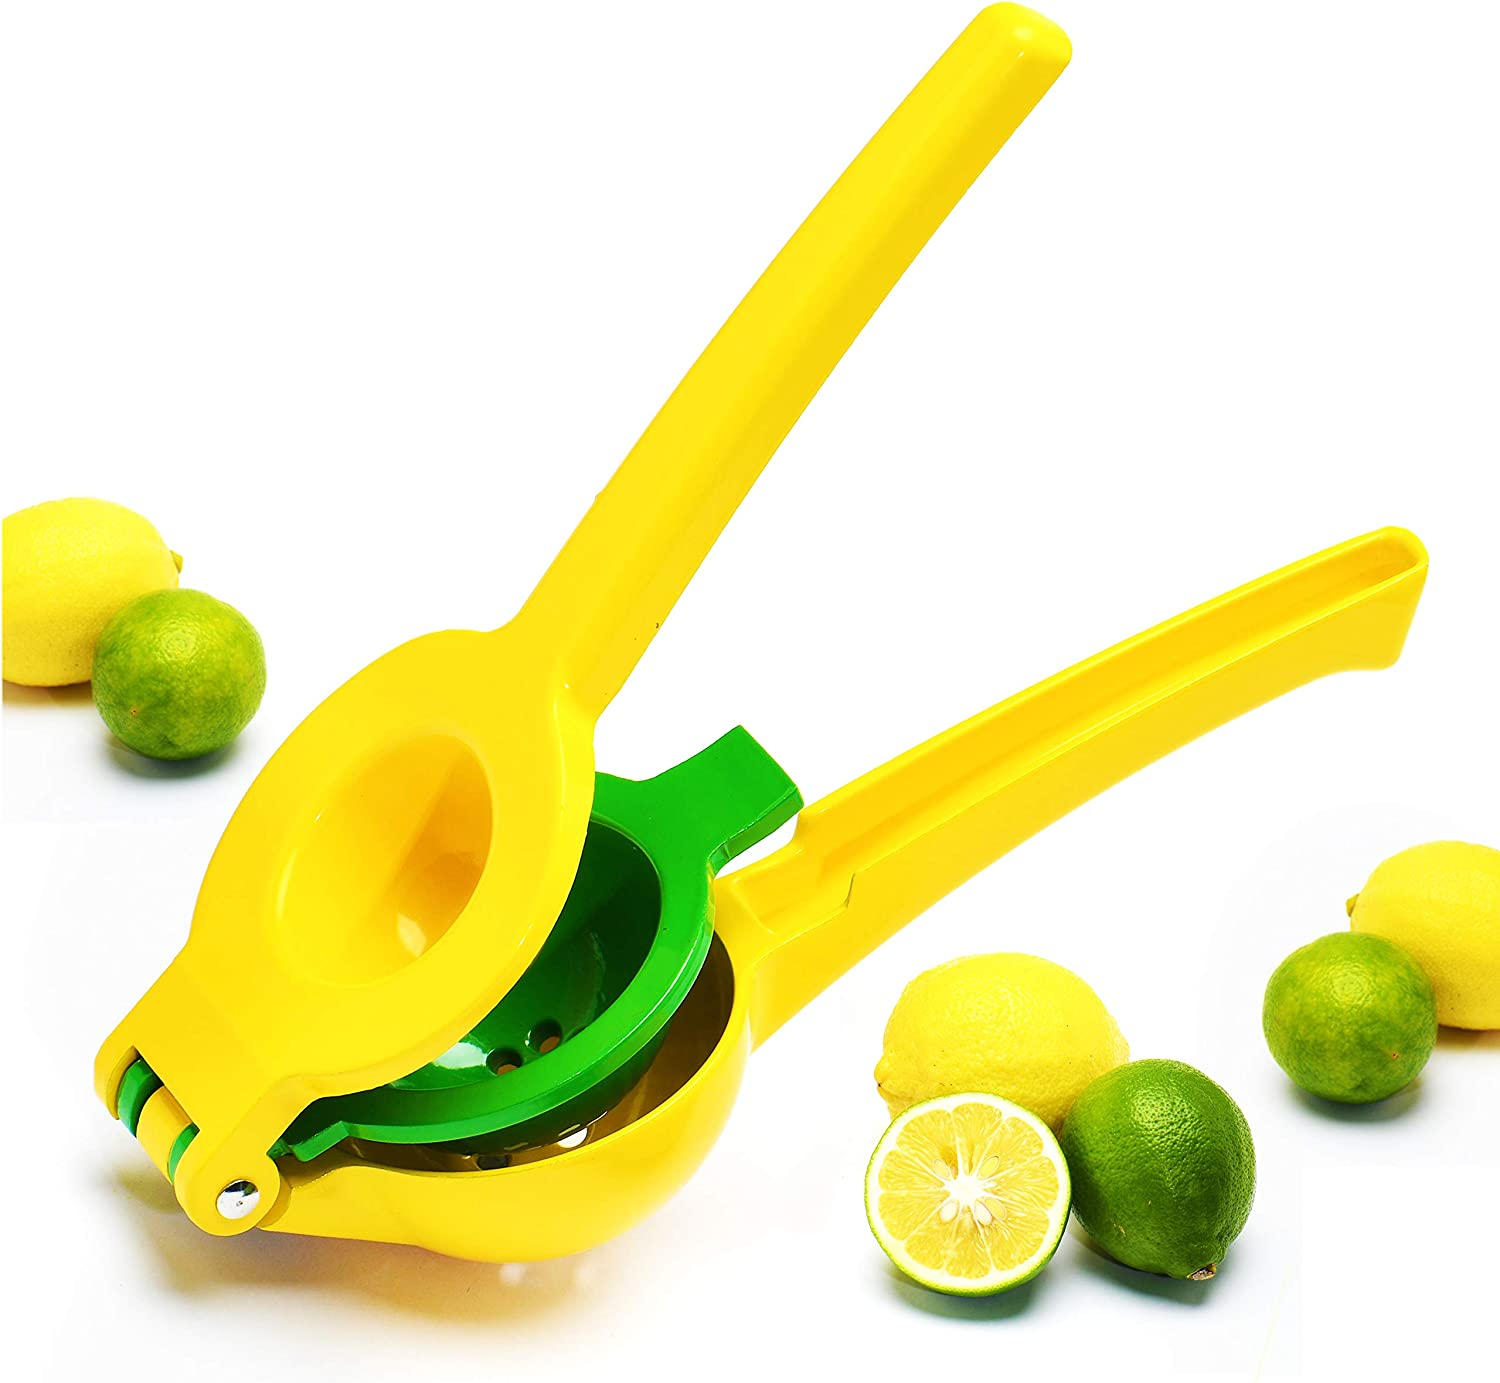 Lemon Squeezer, Premium Juicer Lime Squeezer Hand Stainless Steel Press Metal Design for Orange Citrus Fruit Manual Juicers by Jell-Cell